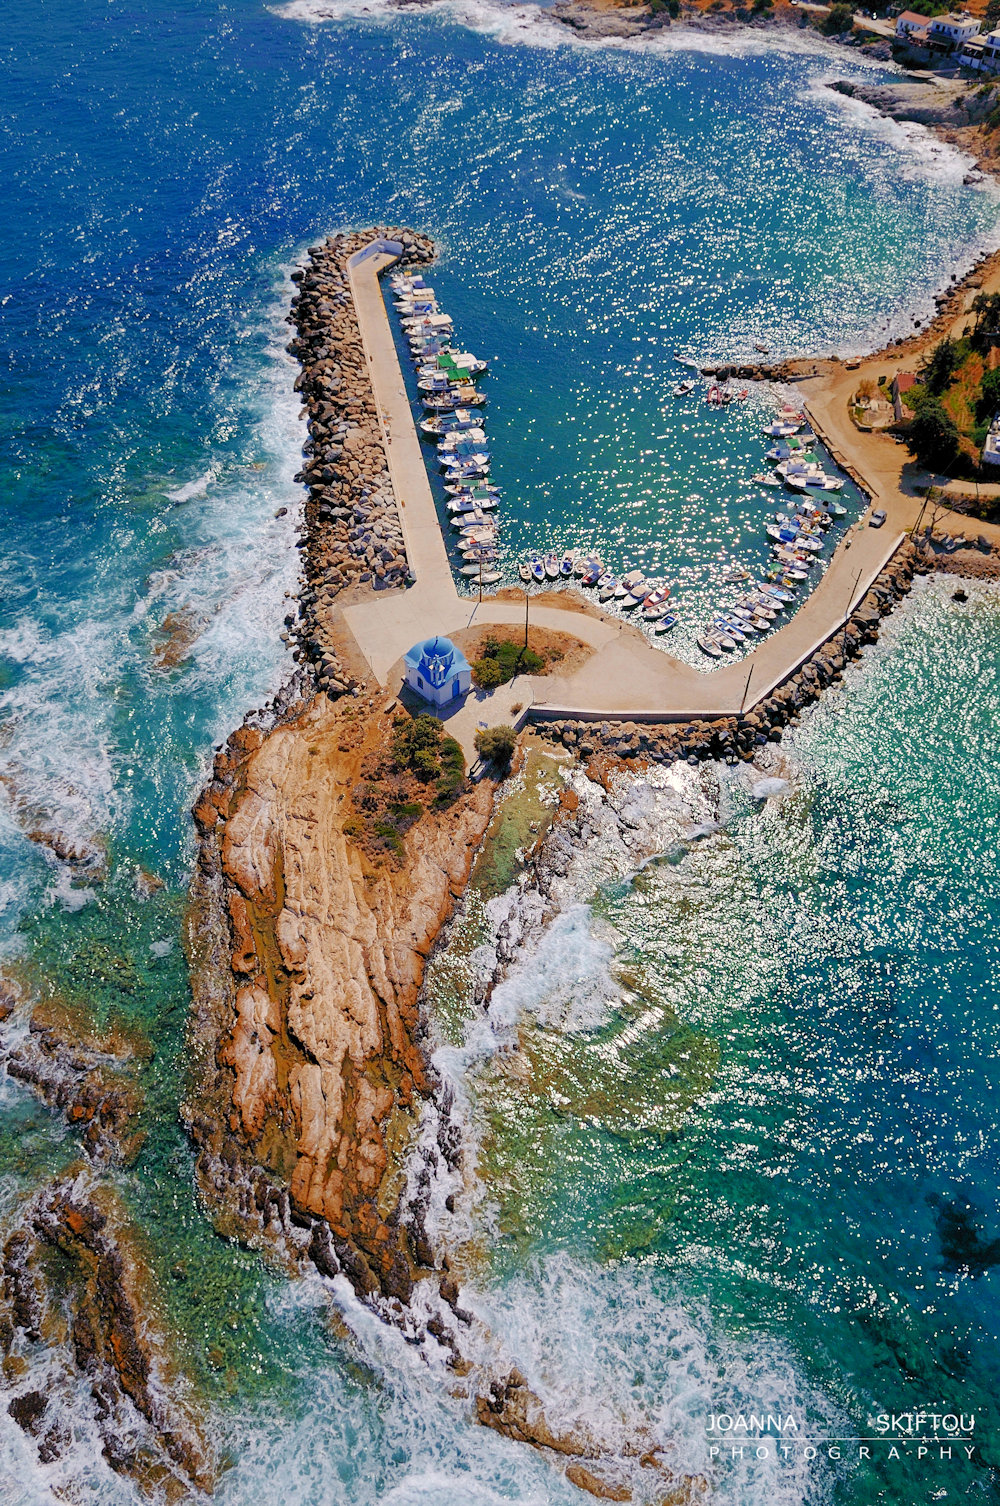 Aerial photography by Joanna Skiftou, Ikaria, Greece